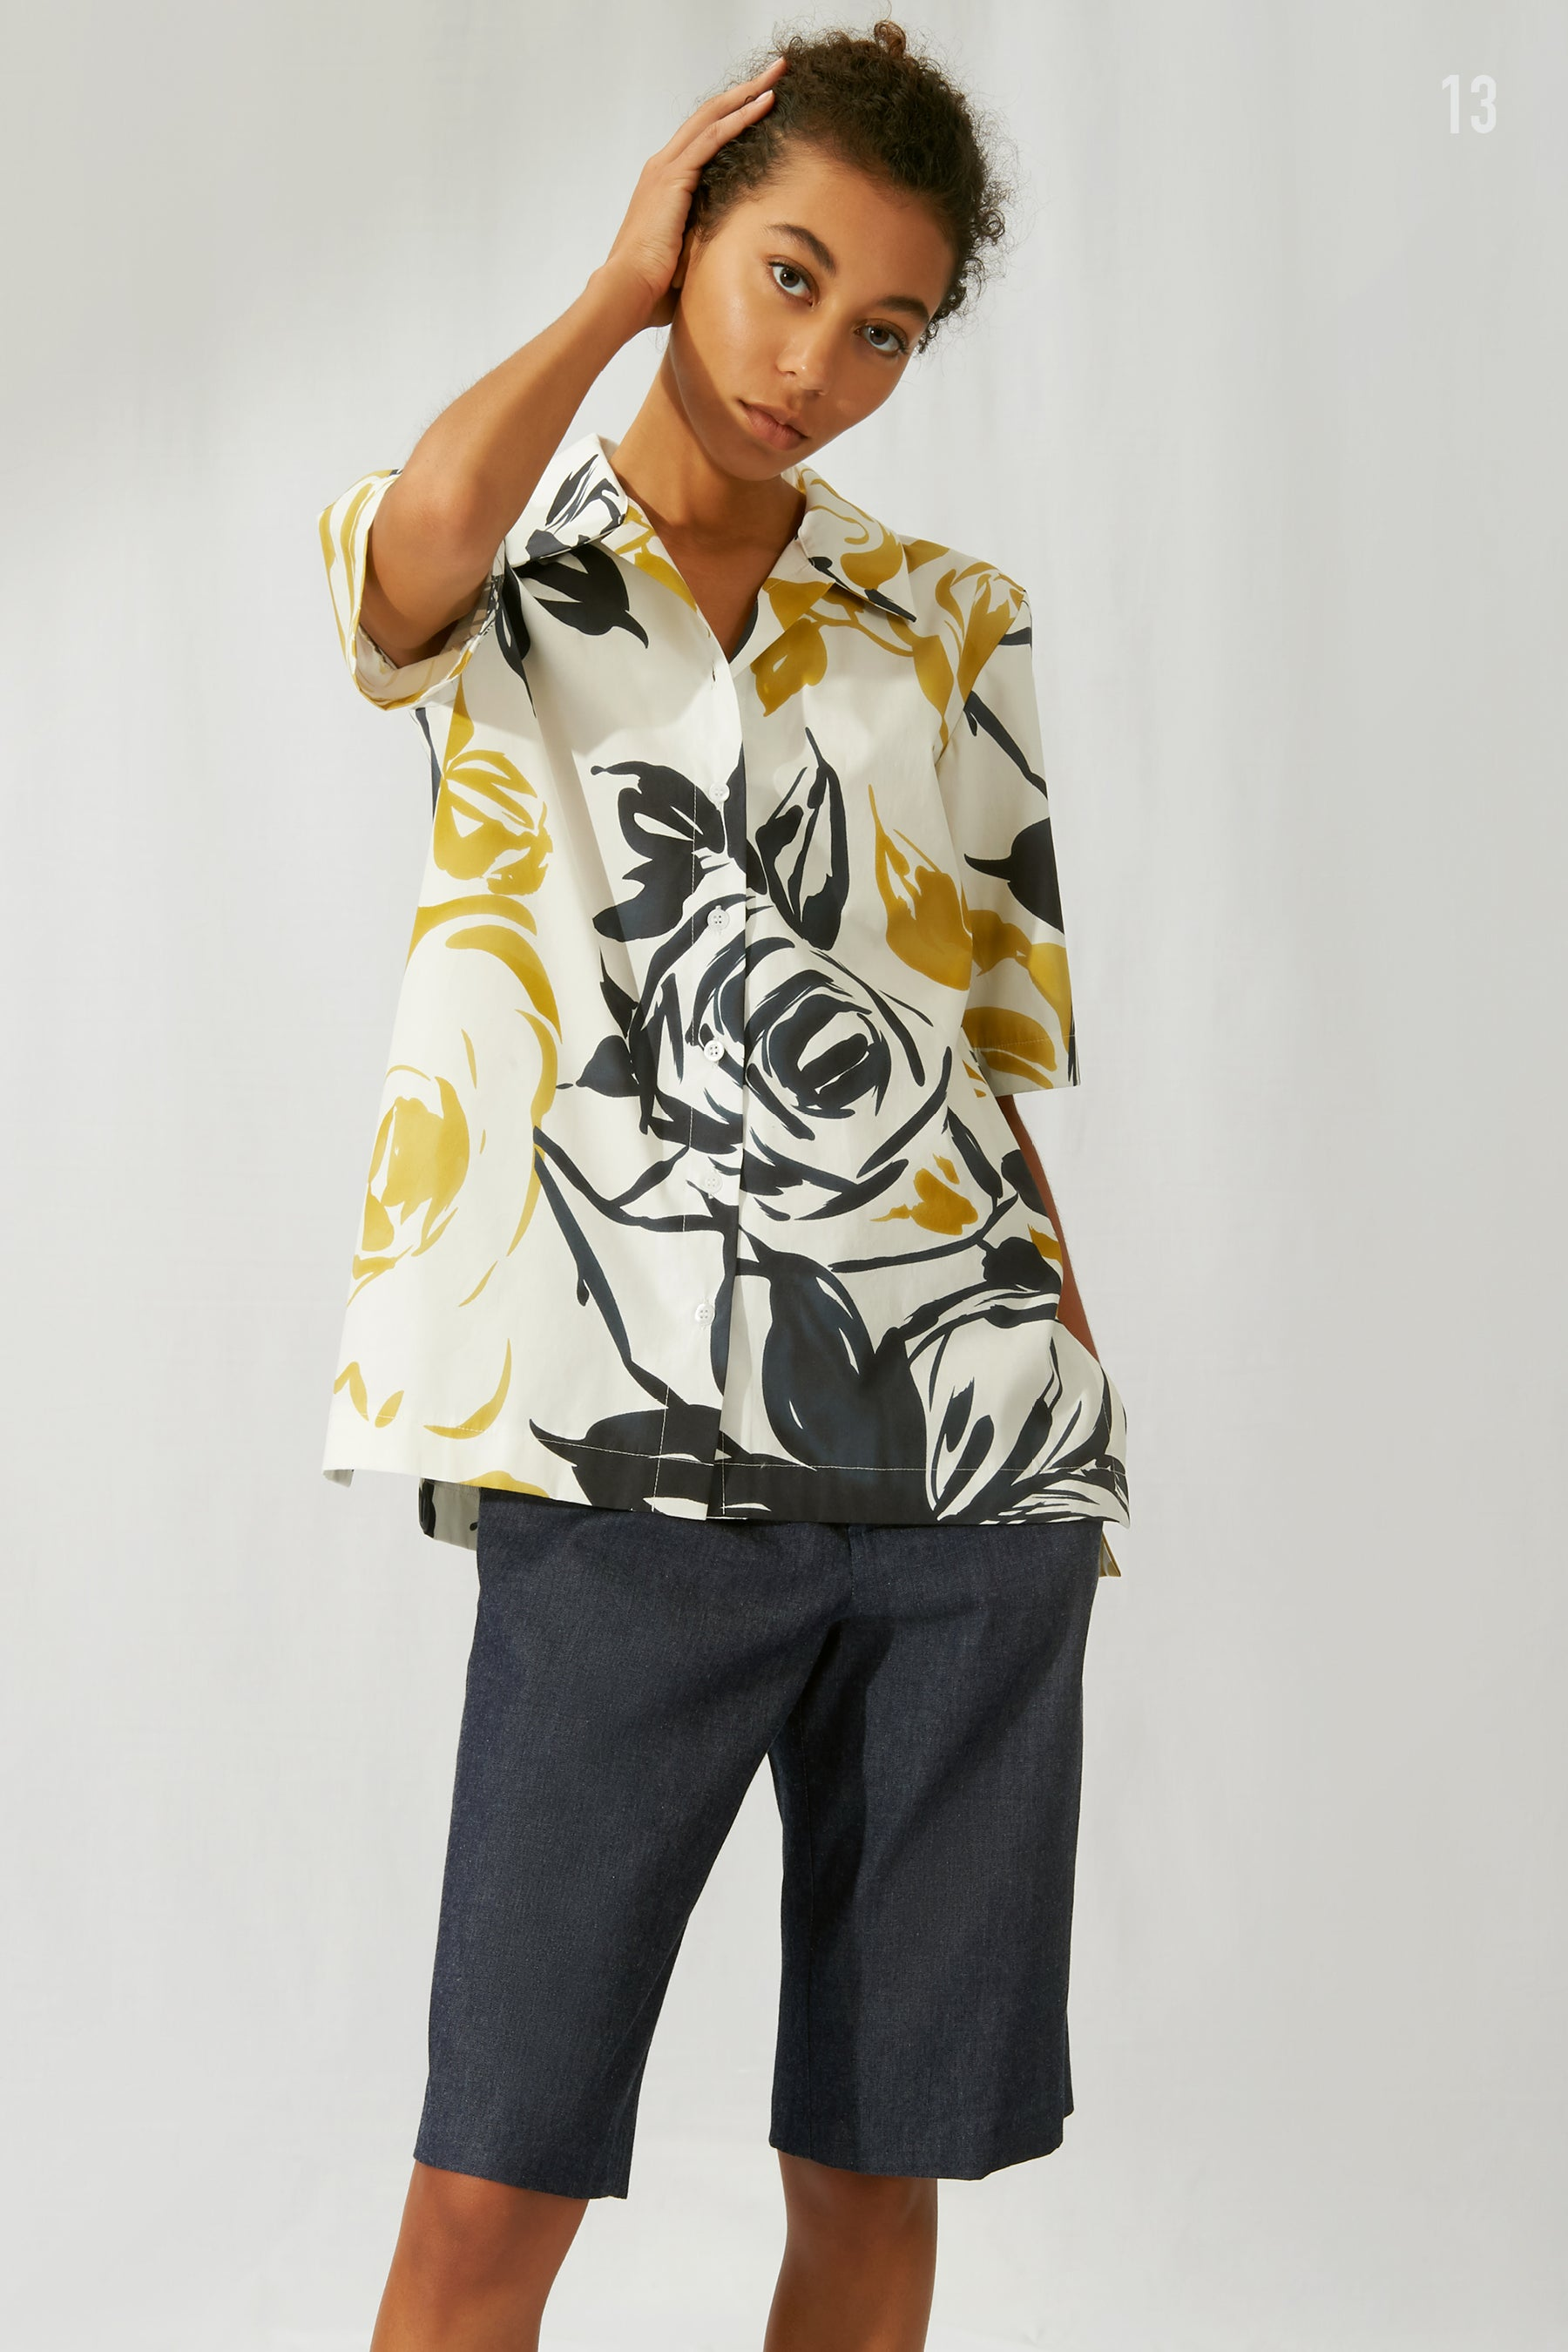 Kal Rieman Spring 2020 Lookbook Look 13